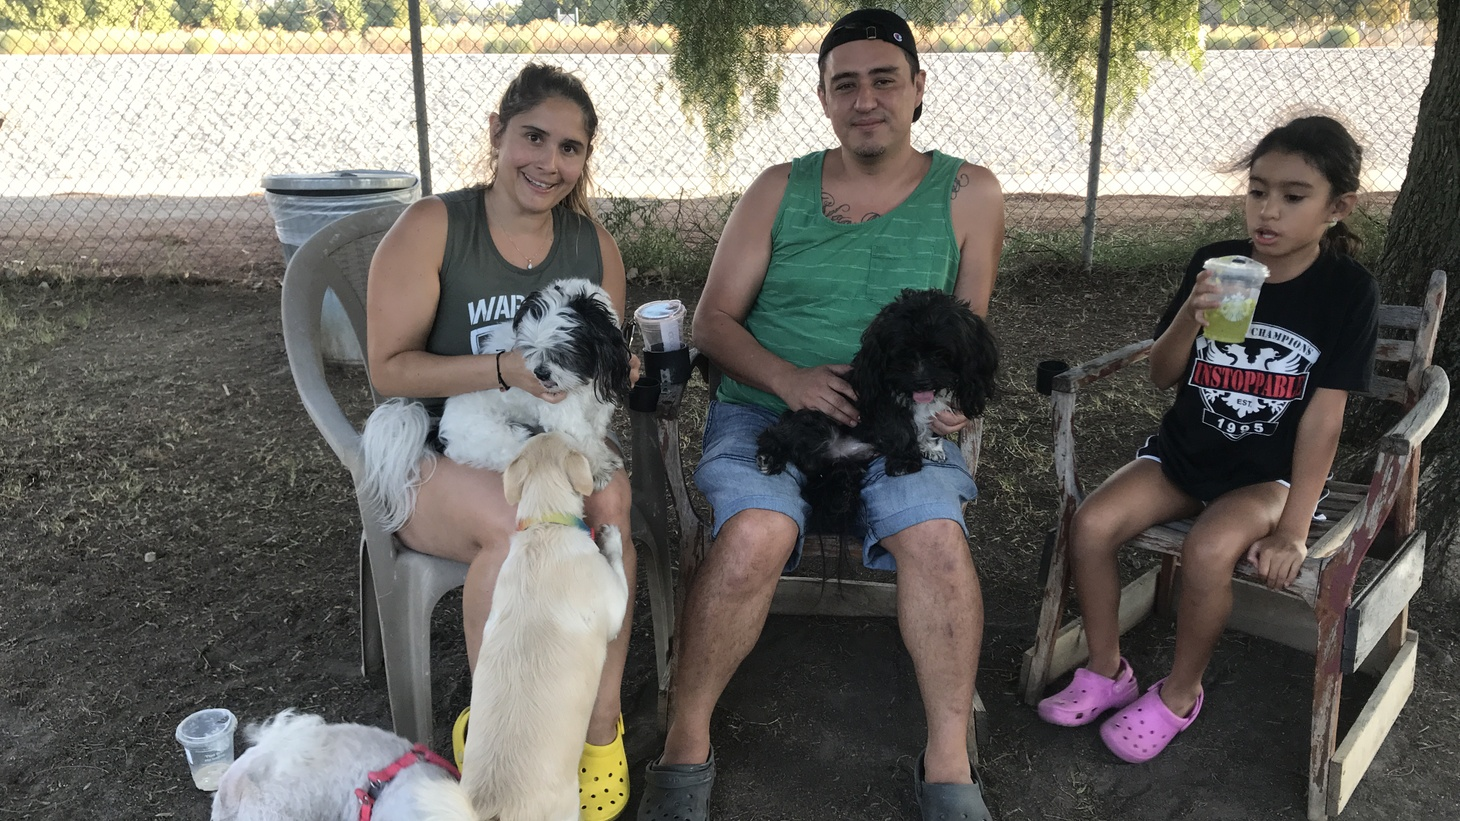 Natalia Ospina (left), her fiancé Dennis, and her daughter Scarlett hang out at the Sepulveda Basin Off-Leash Dog Park in Encino as their two dogs roam free. Photo by Benjamin Gottlieb.